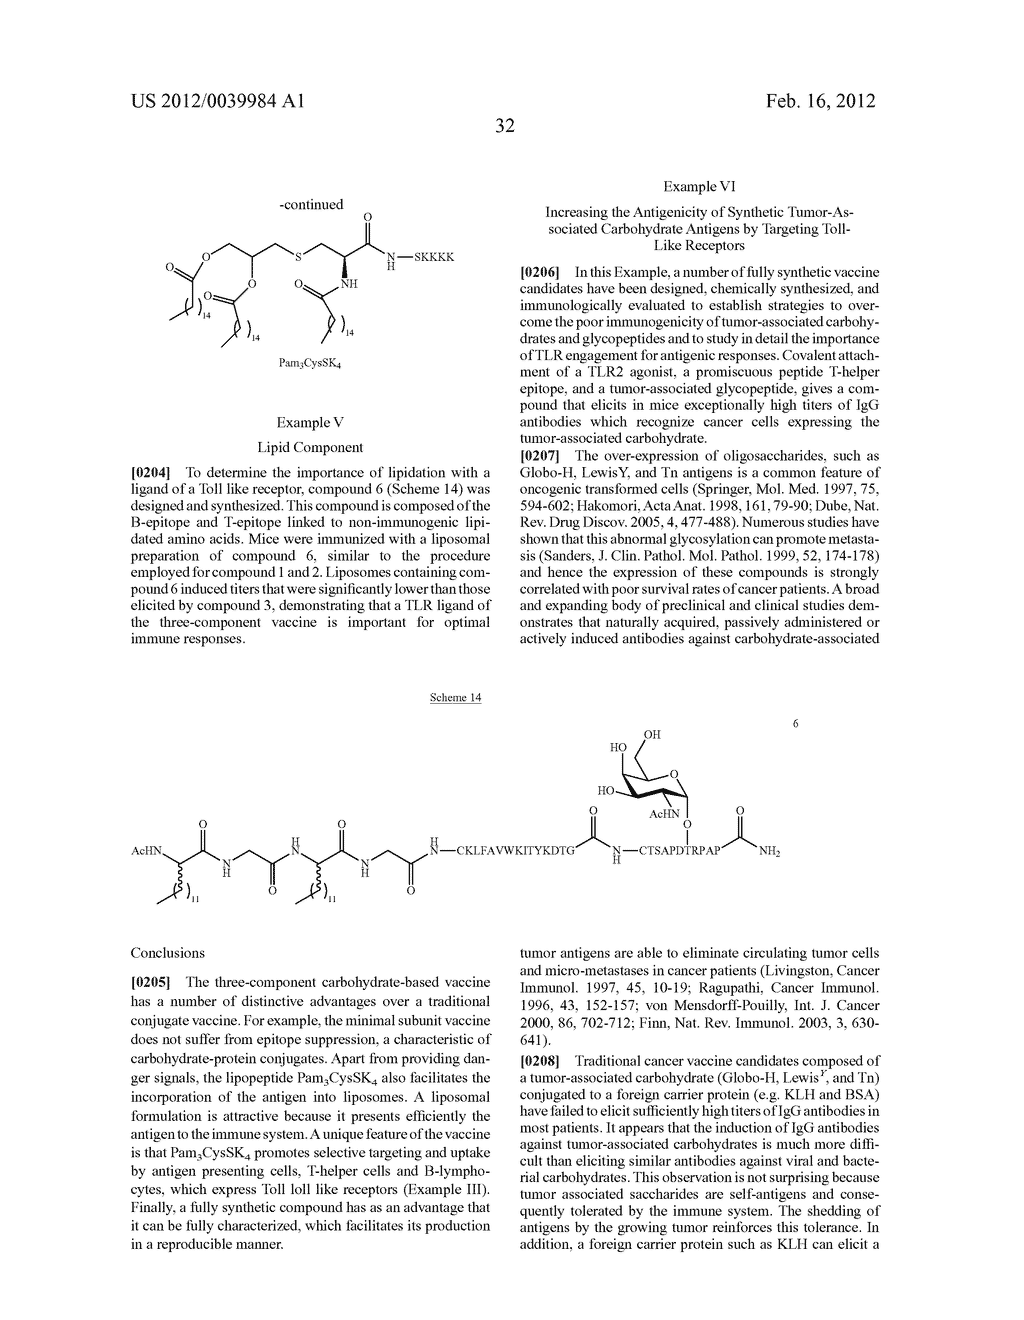 GLYCOPEPTIDE AND USES THEREOF - diagram, schematic, and image 67